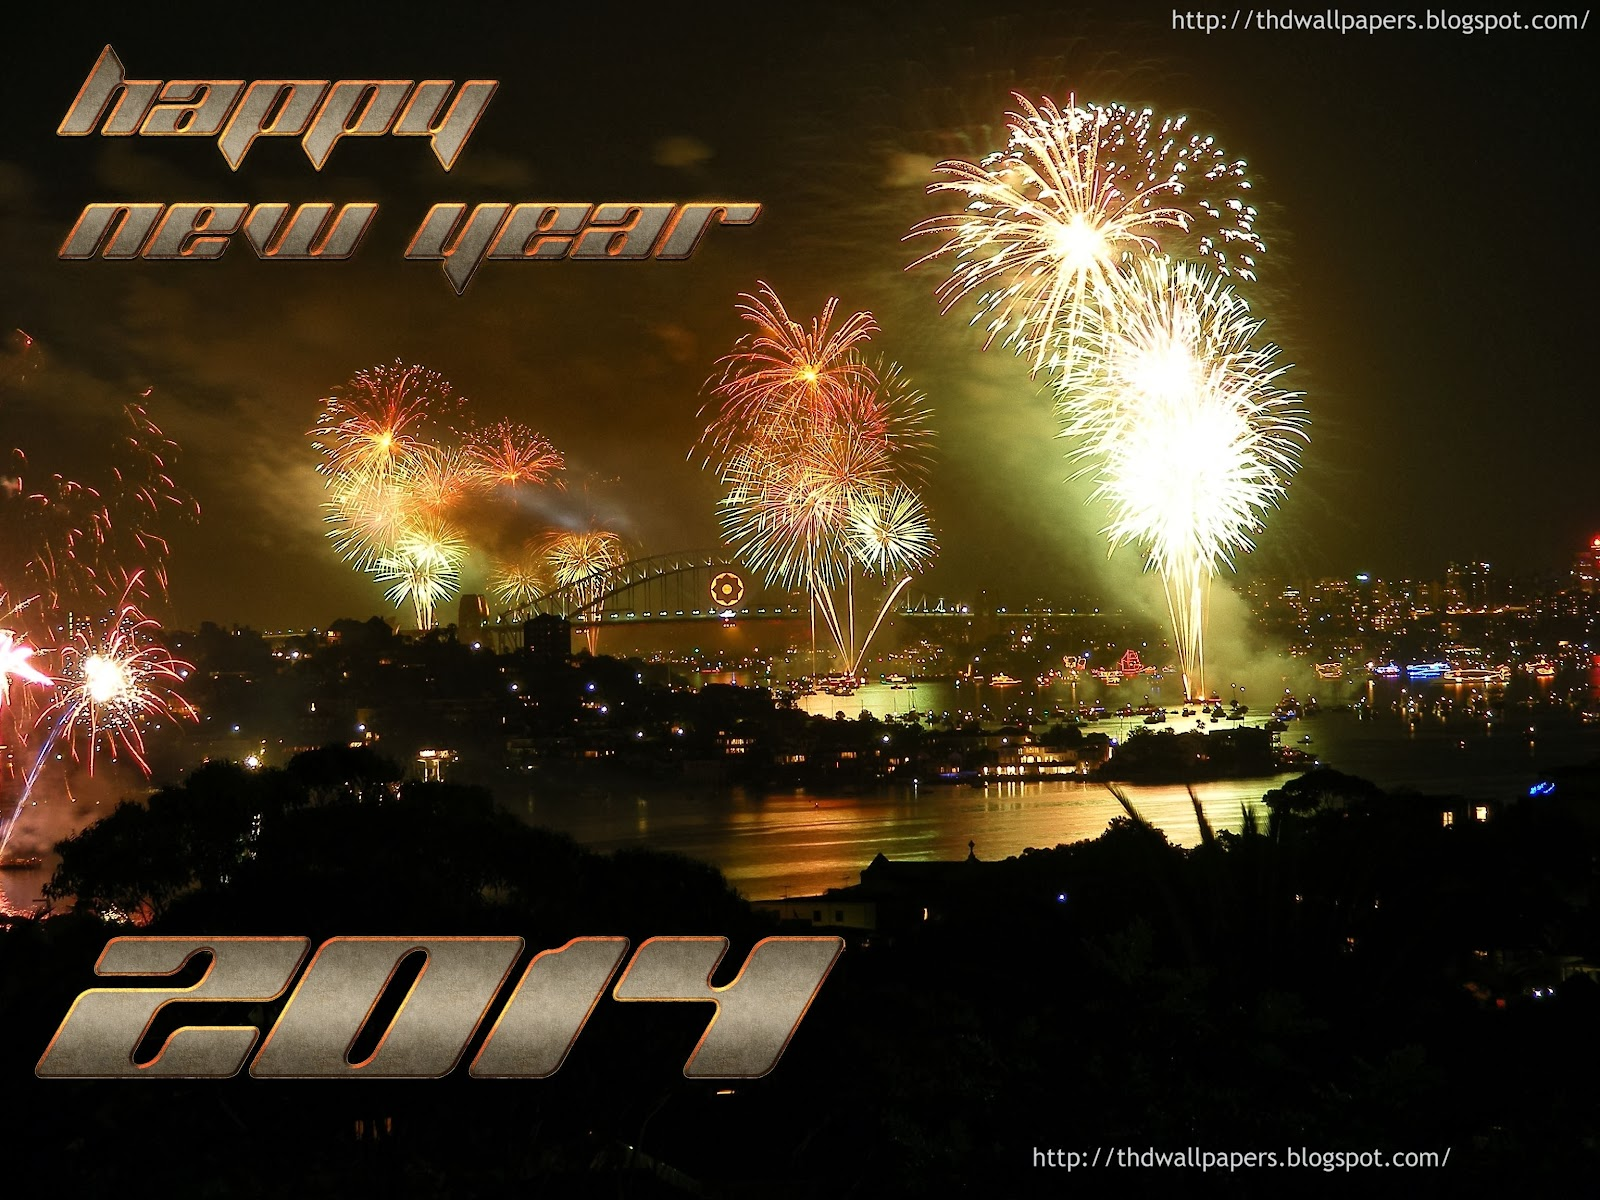 1600 x 1200 jpeg 403kB, Latest Happy New Year Eve Pictures Fireworks ...